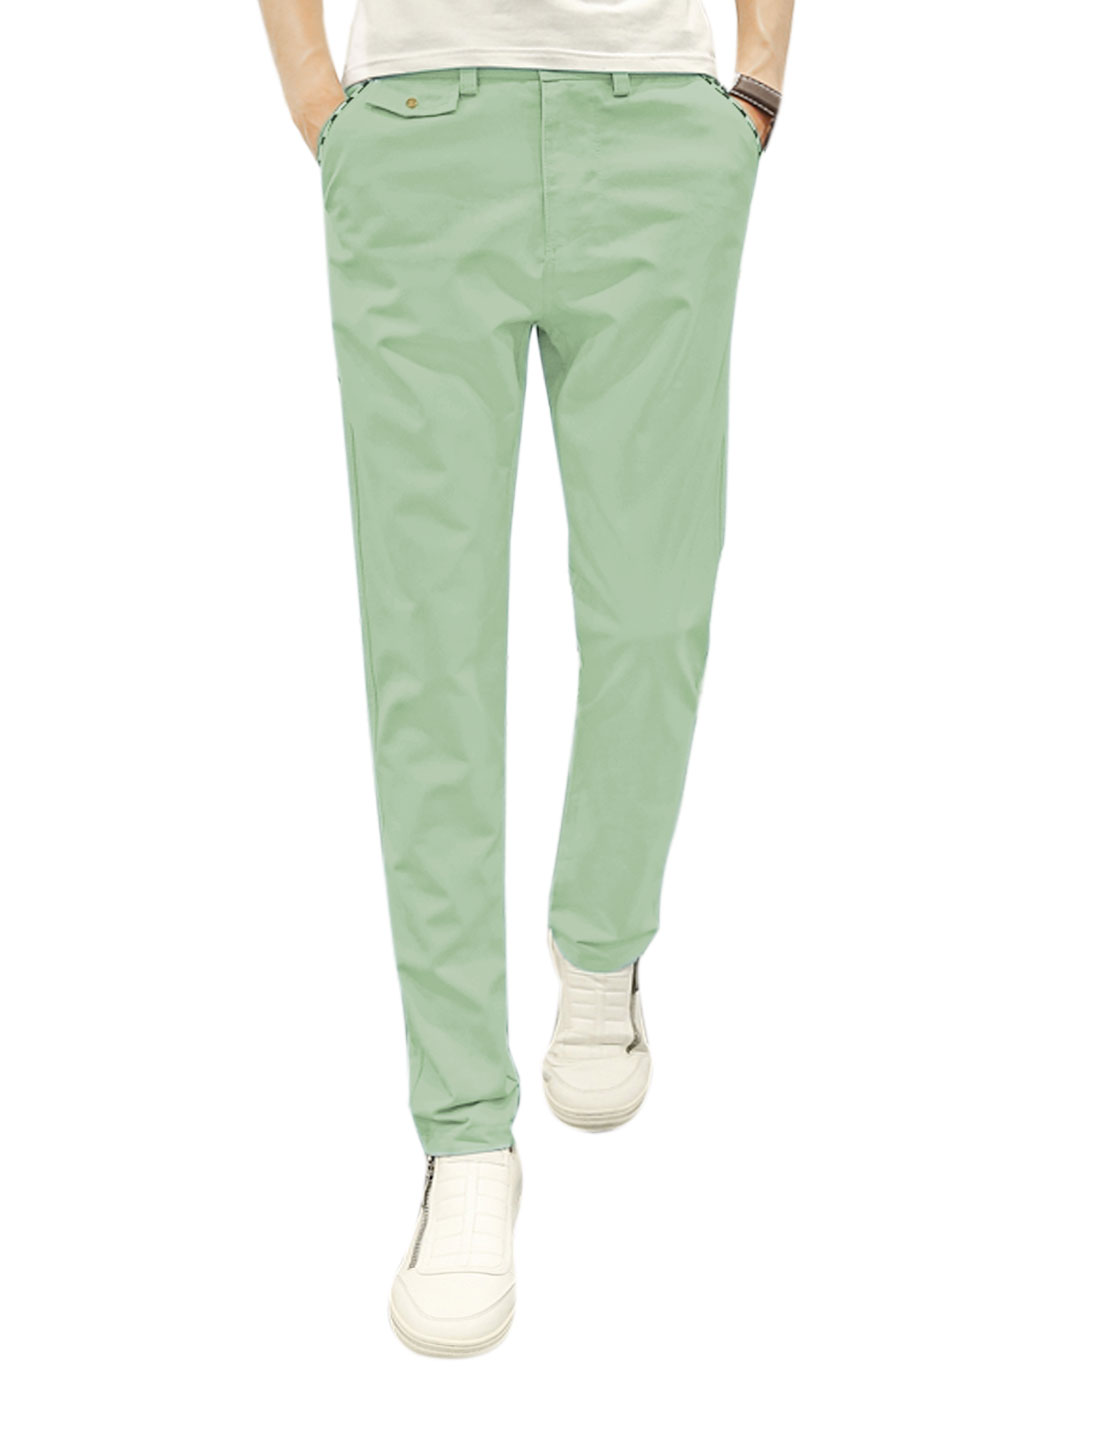 Men Zippered Natural Waist Four Pockets Tapered Leisure Pants Green W32